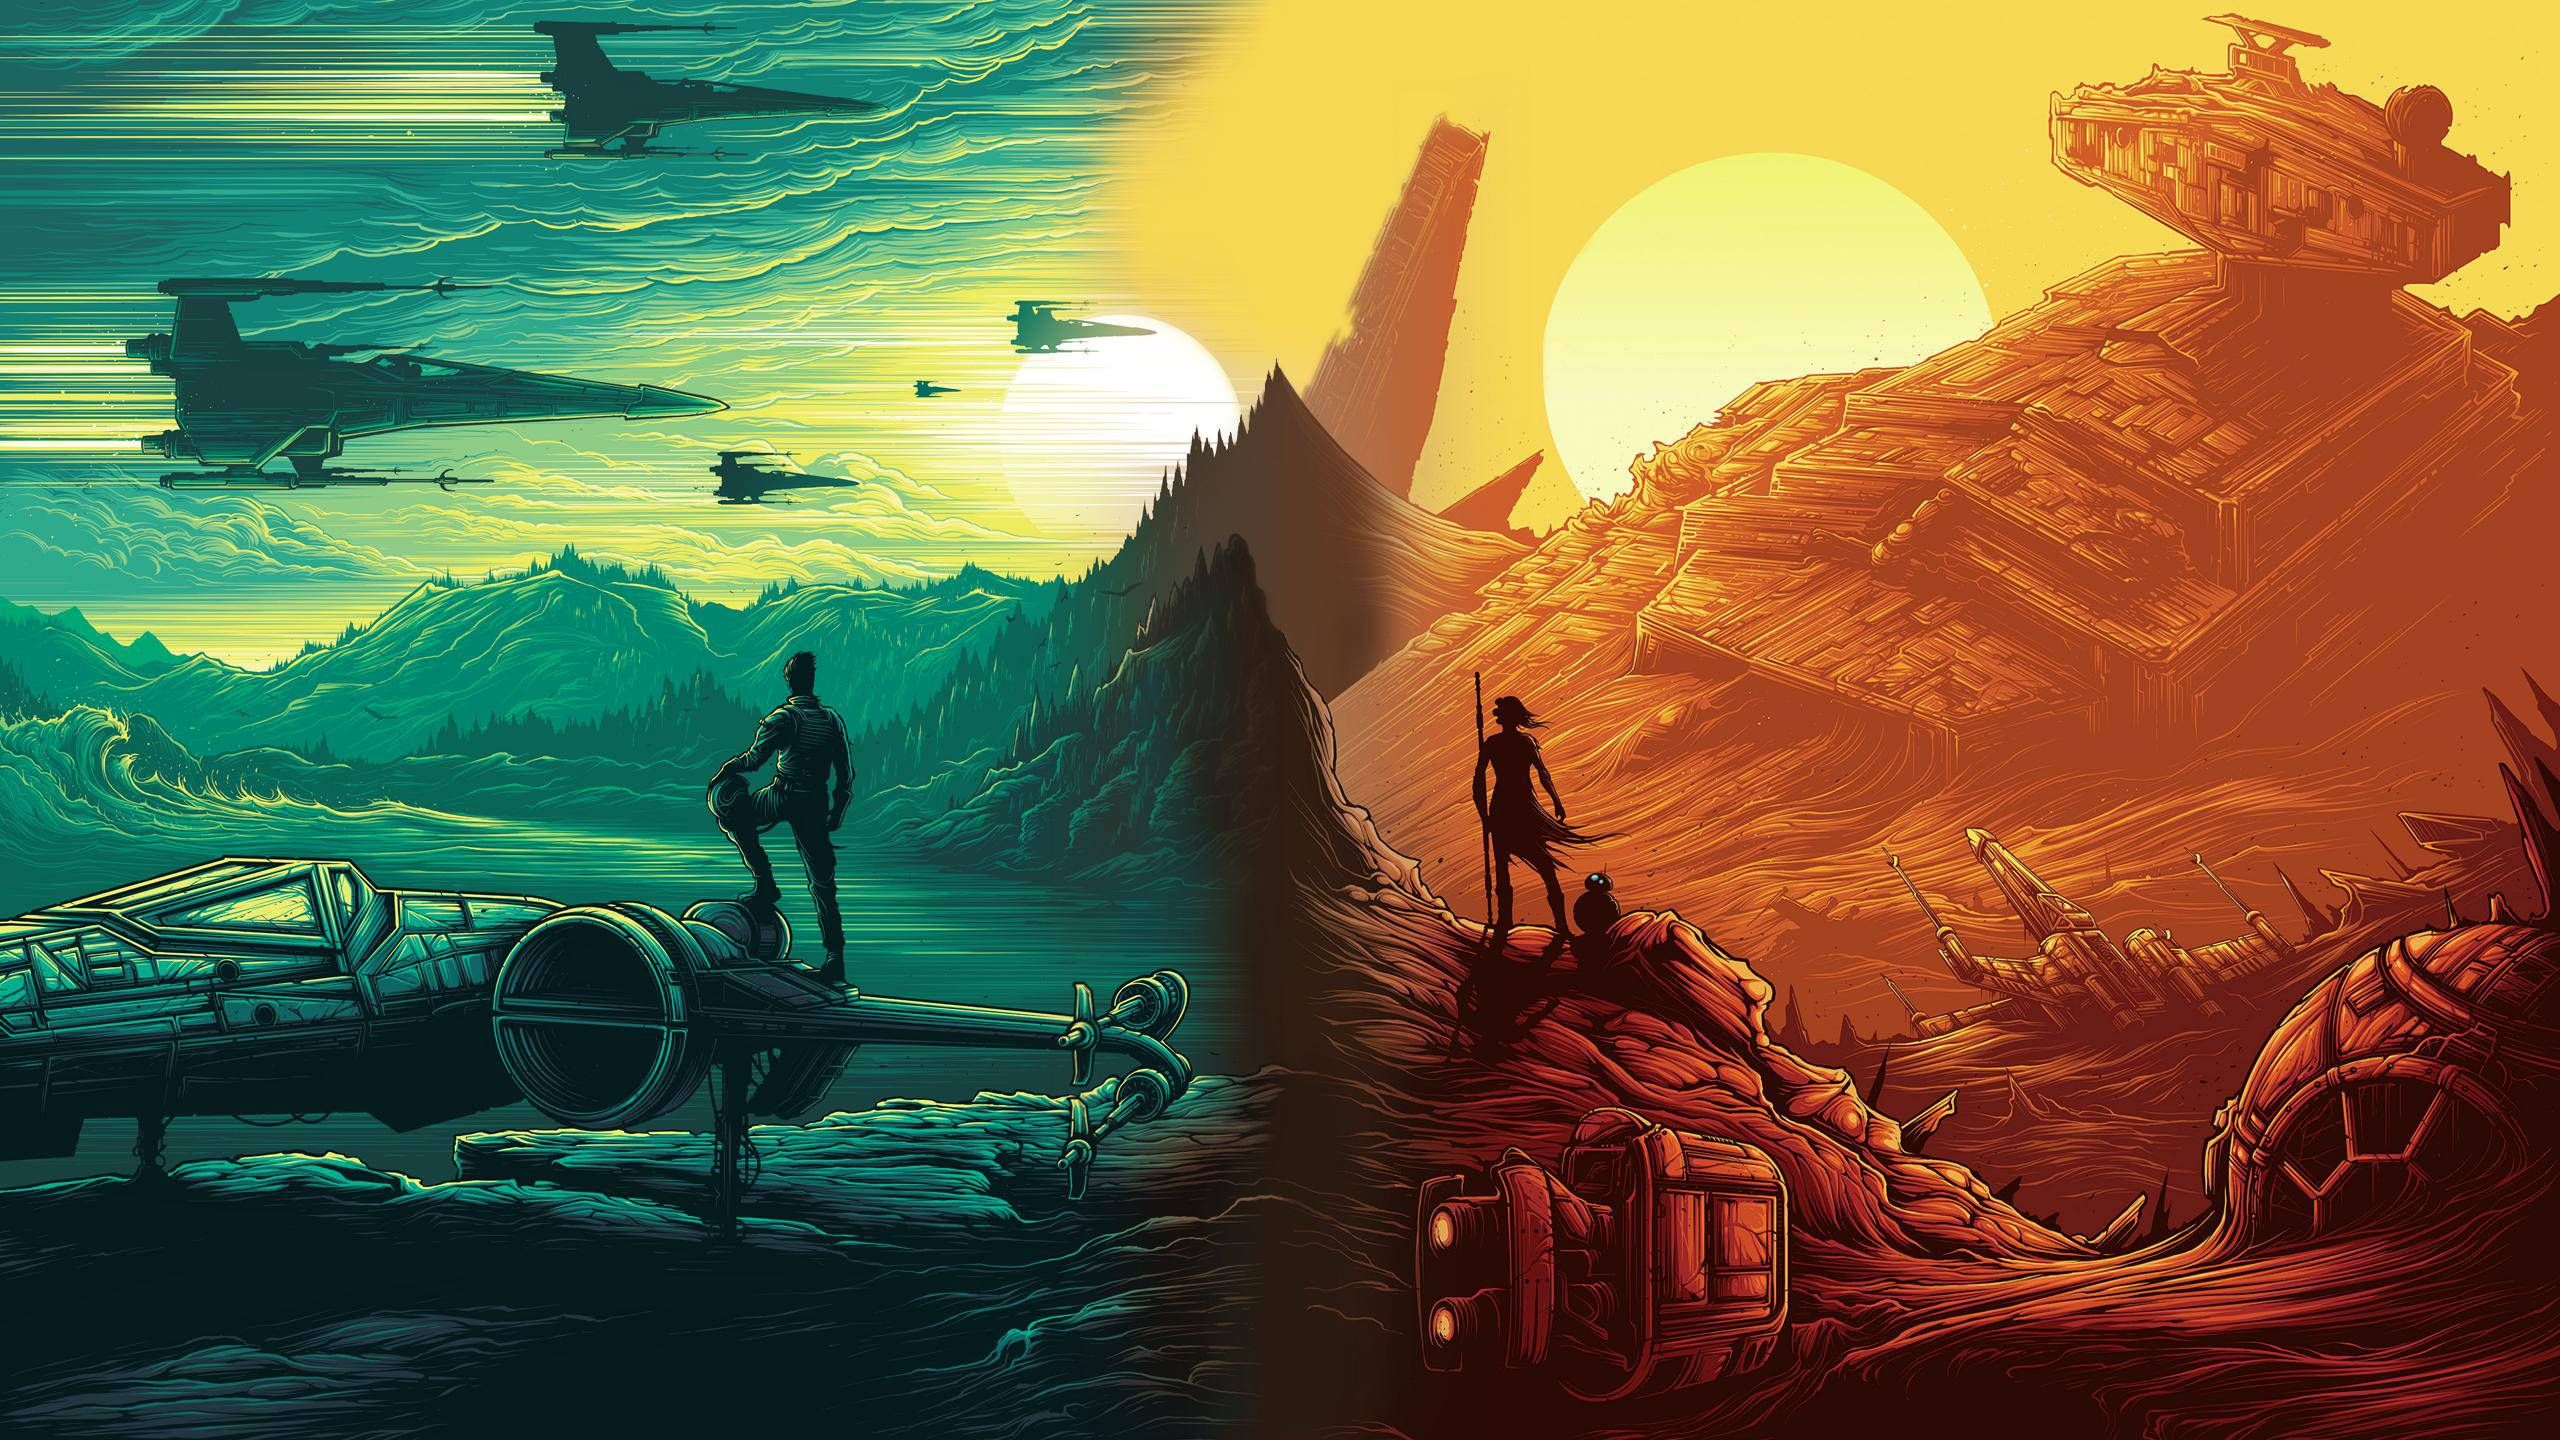 Dan Mumford Awesome Post Star Wars Pictures Star Wars Wallpaper Star Wars Episode Vii